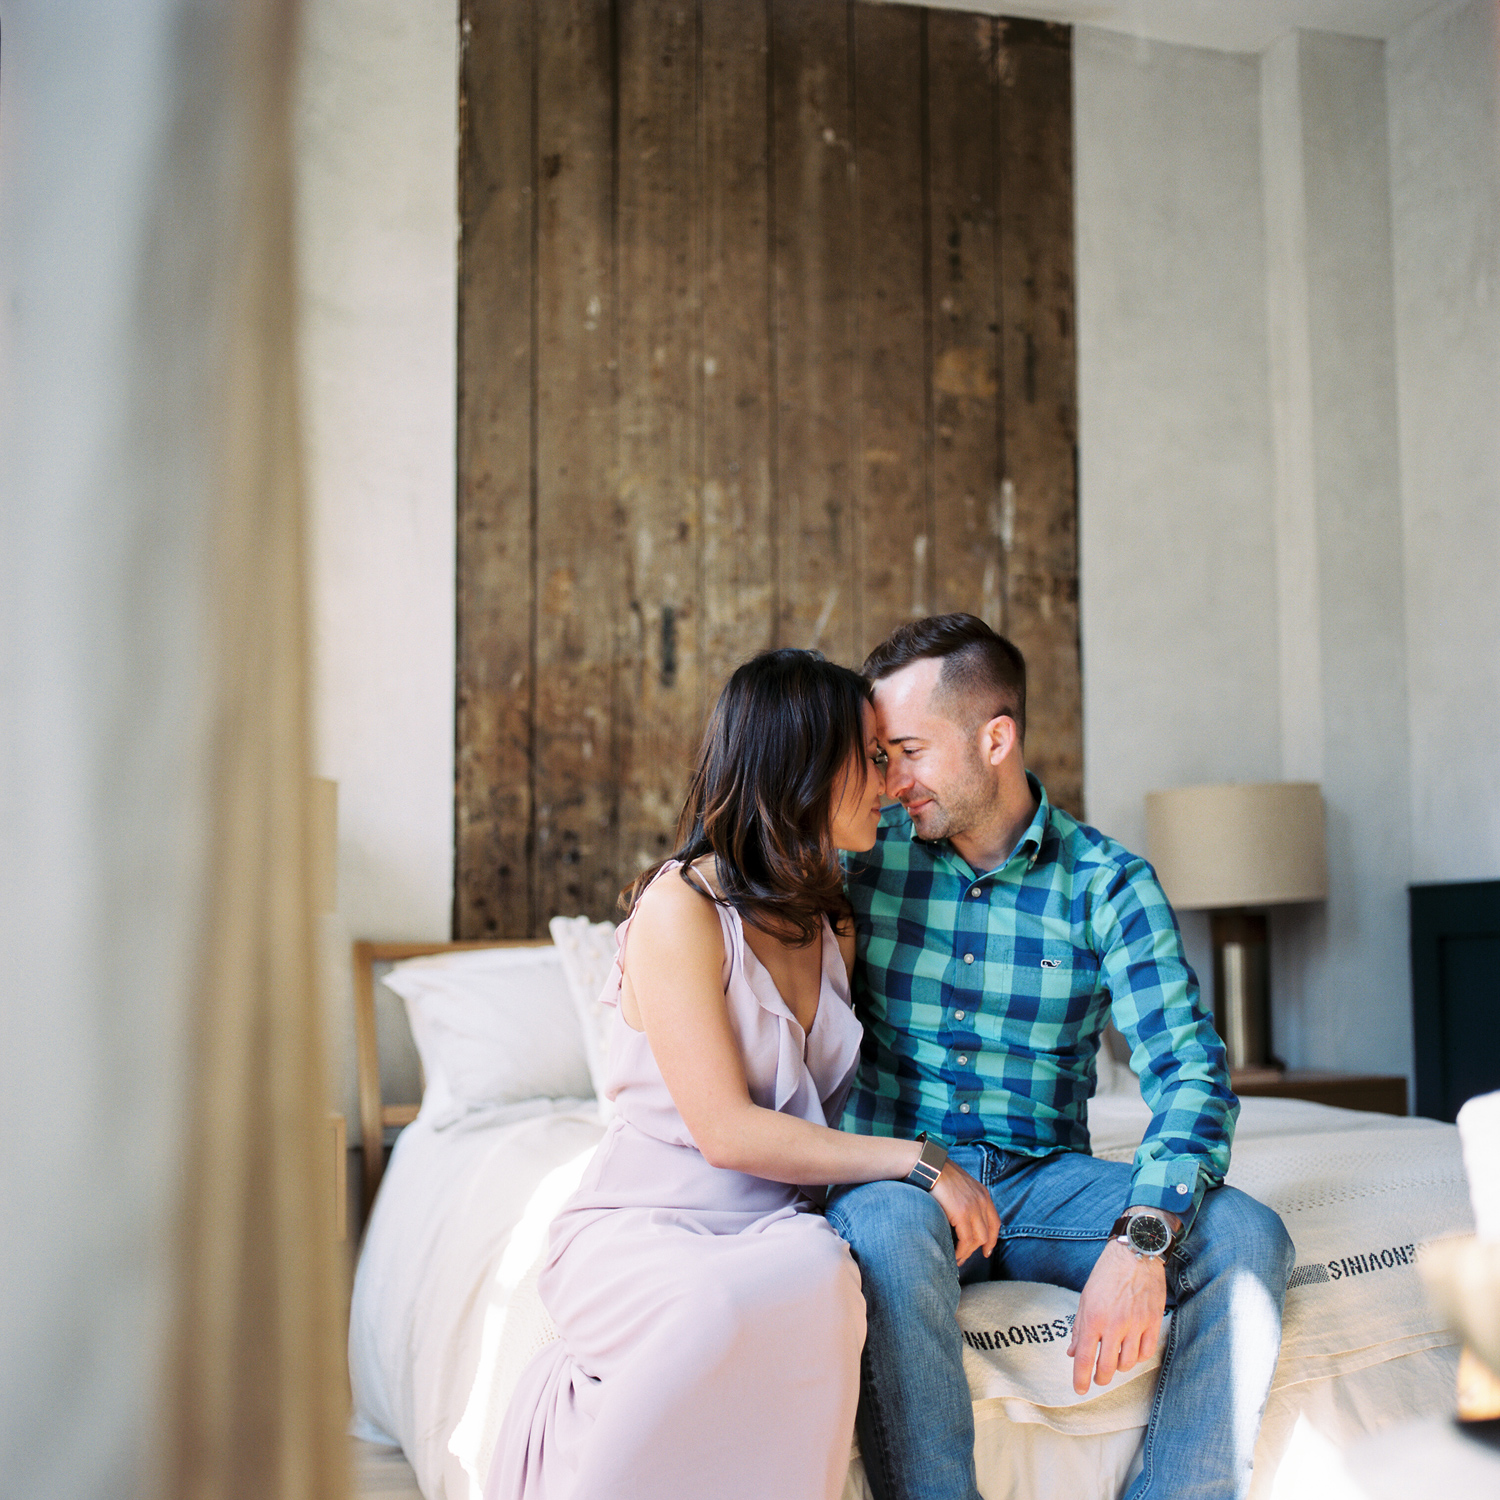 Siousca_Photography_philadelphia_engagement_film_photographer_lokal_hotel_old_city_philly_13.jpg